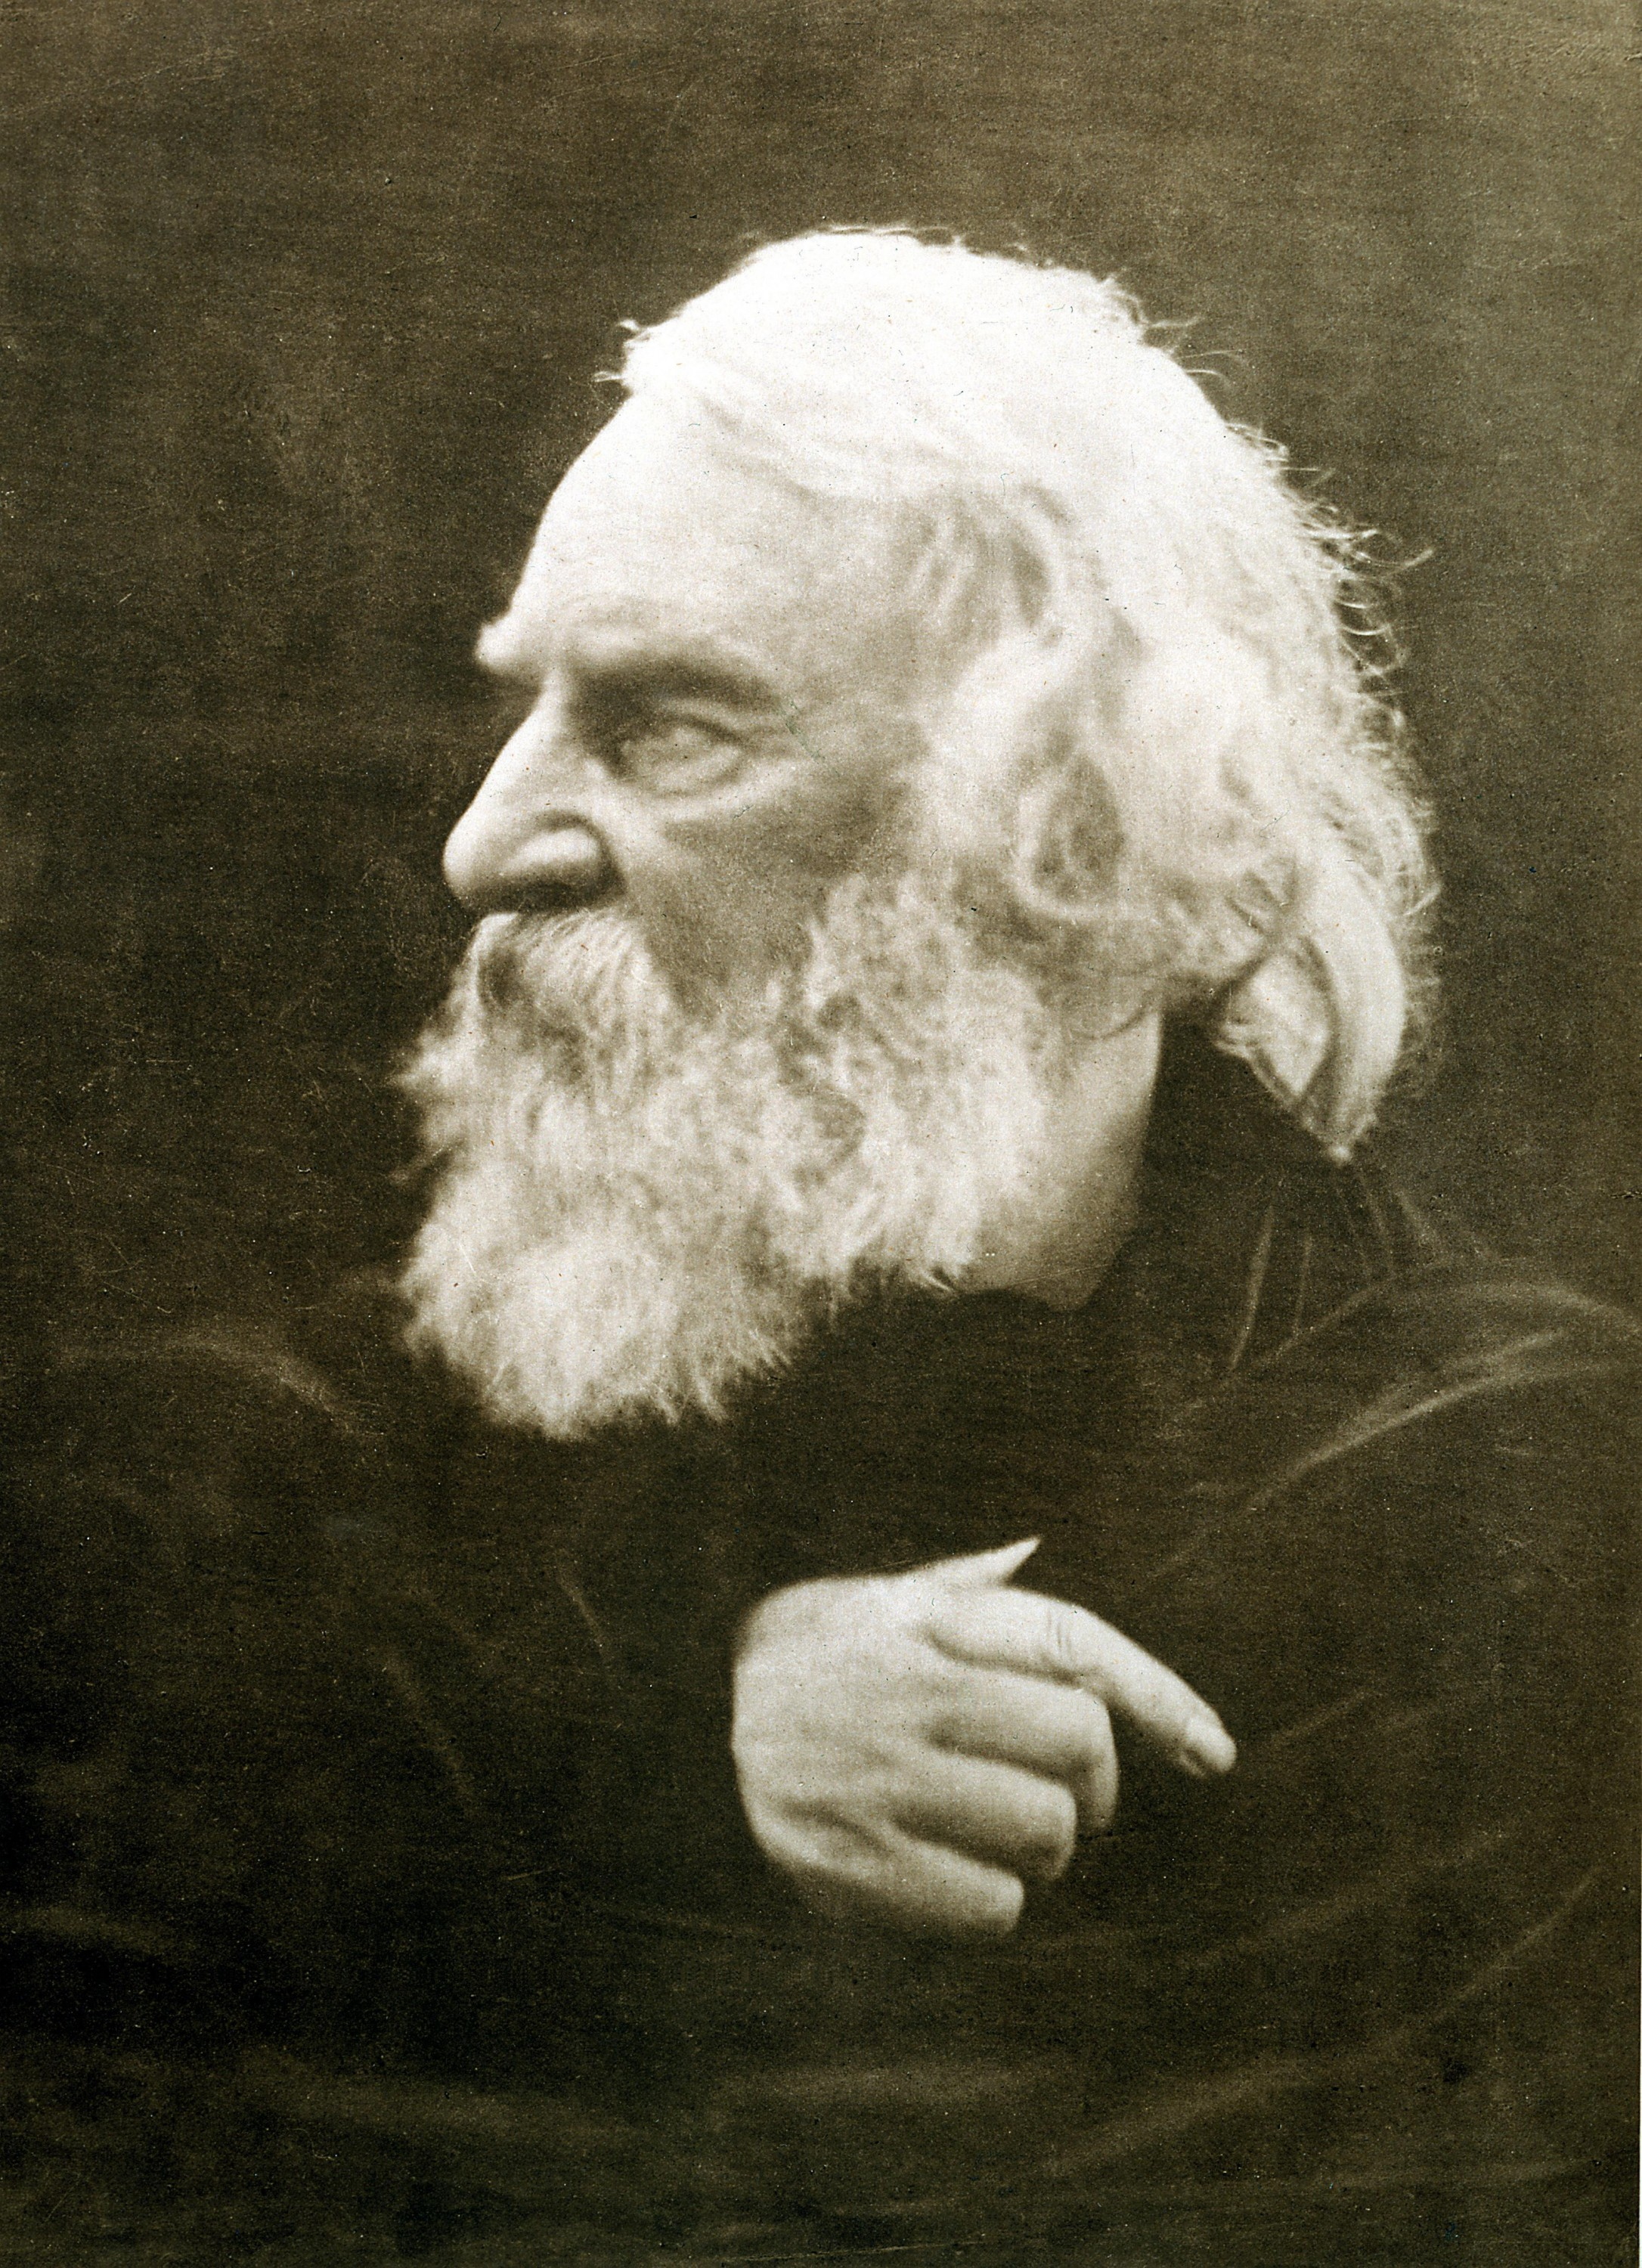 Henry Wadsworth Longfellow, photographed by Julia Margaret Cameron in 1868 (Wikimedia)